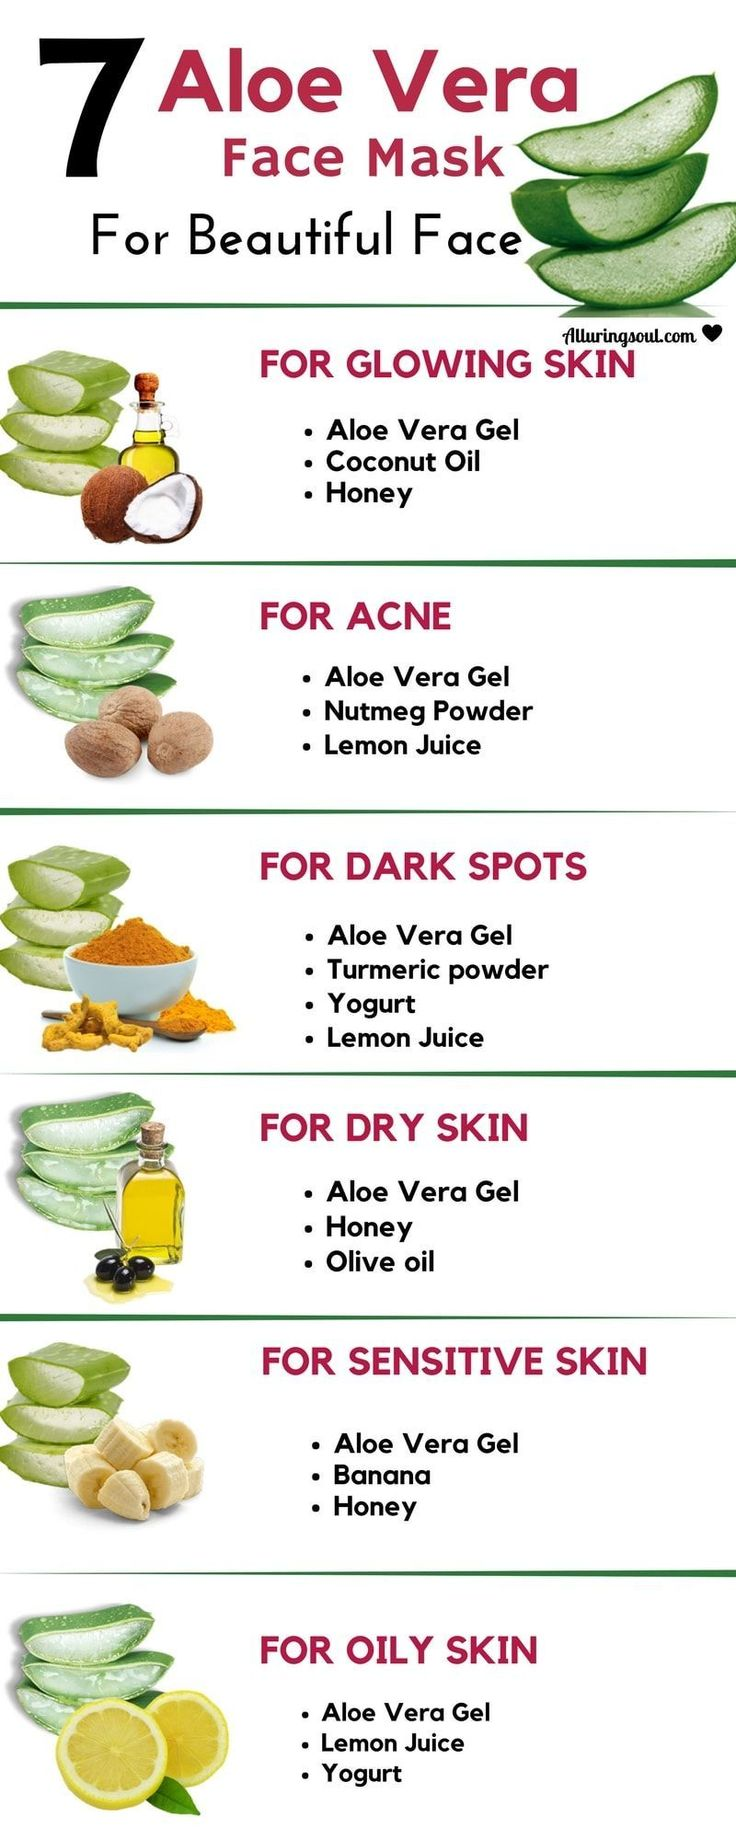 7 Aloe Vera Face Mask For Bright And Beautiful Skin